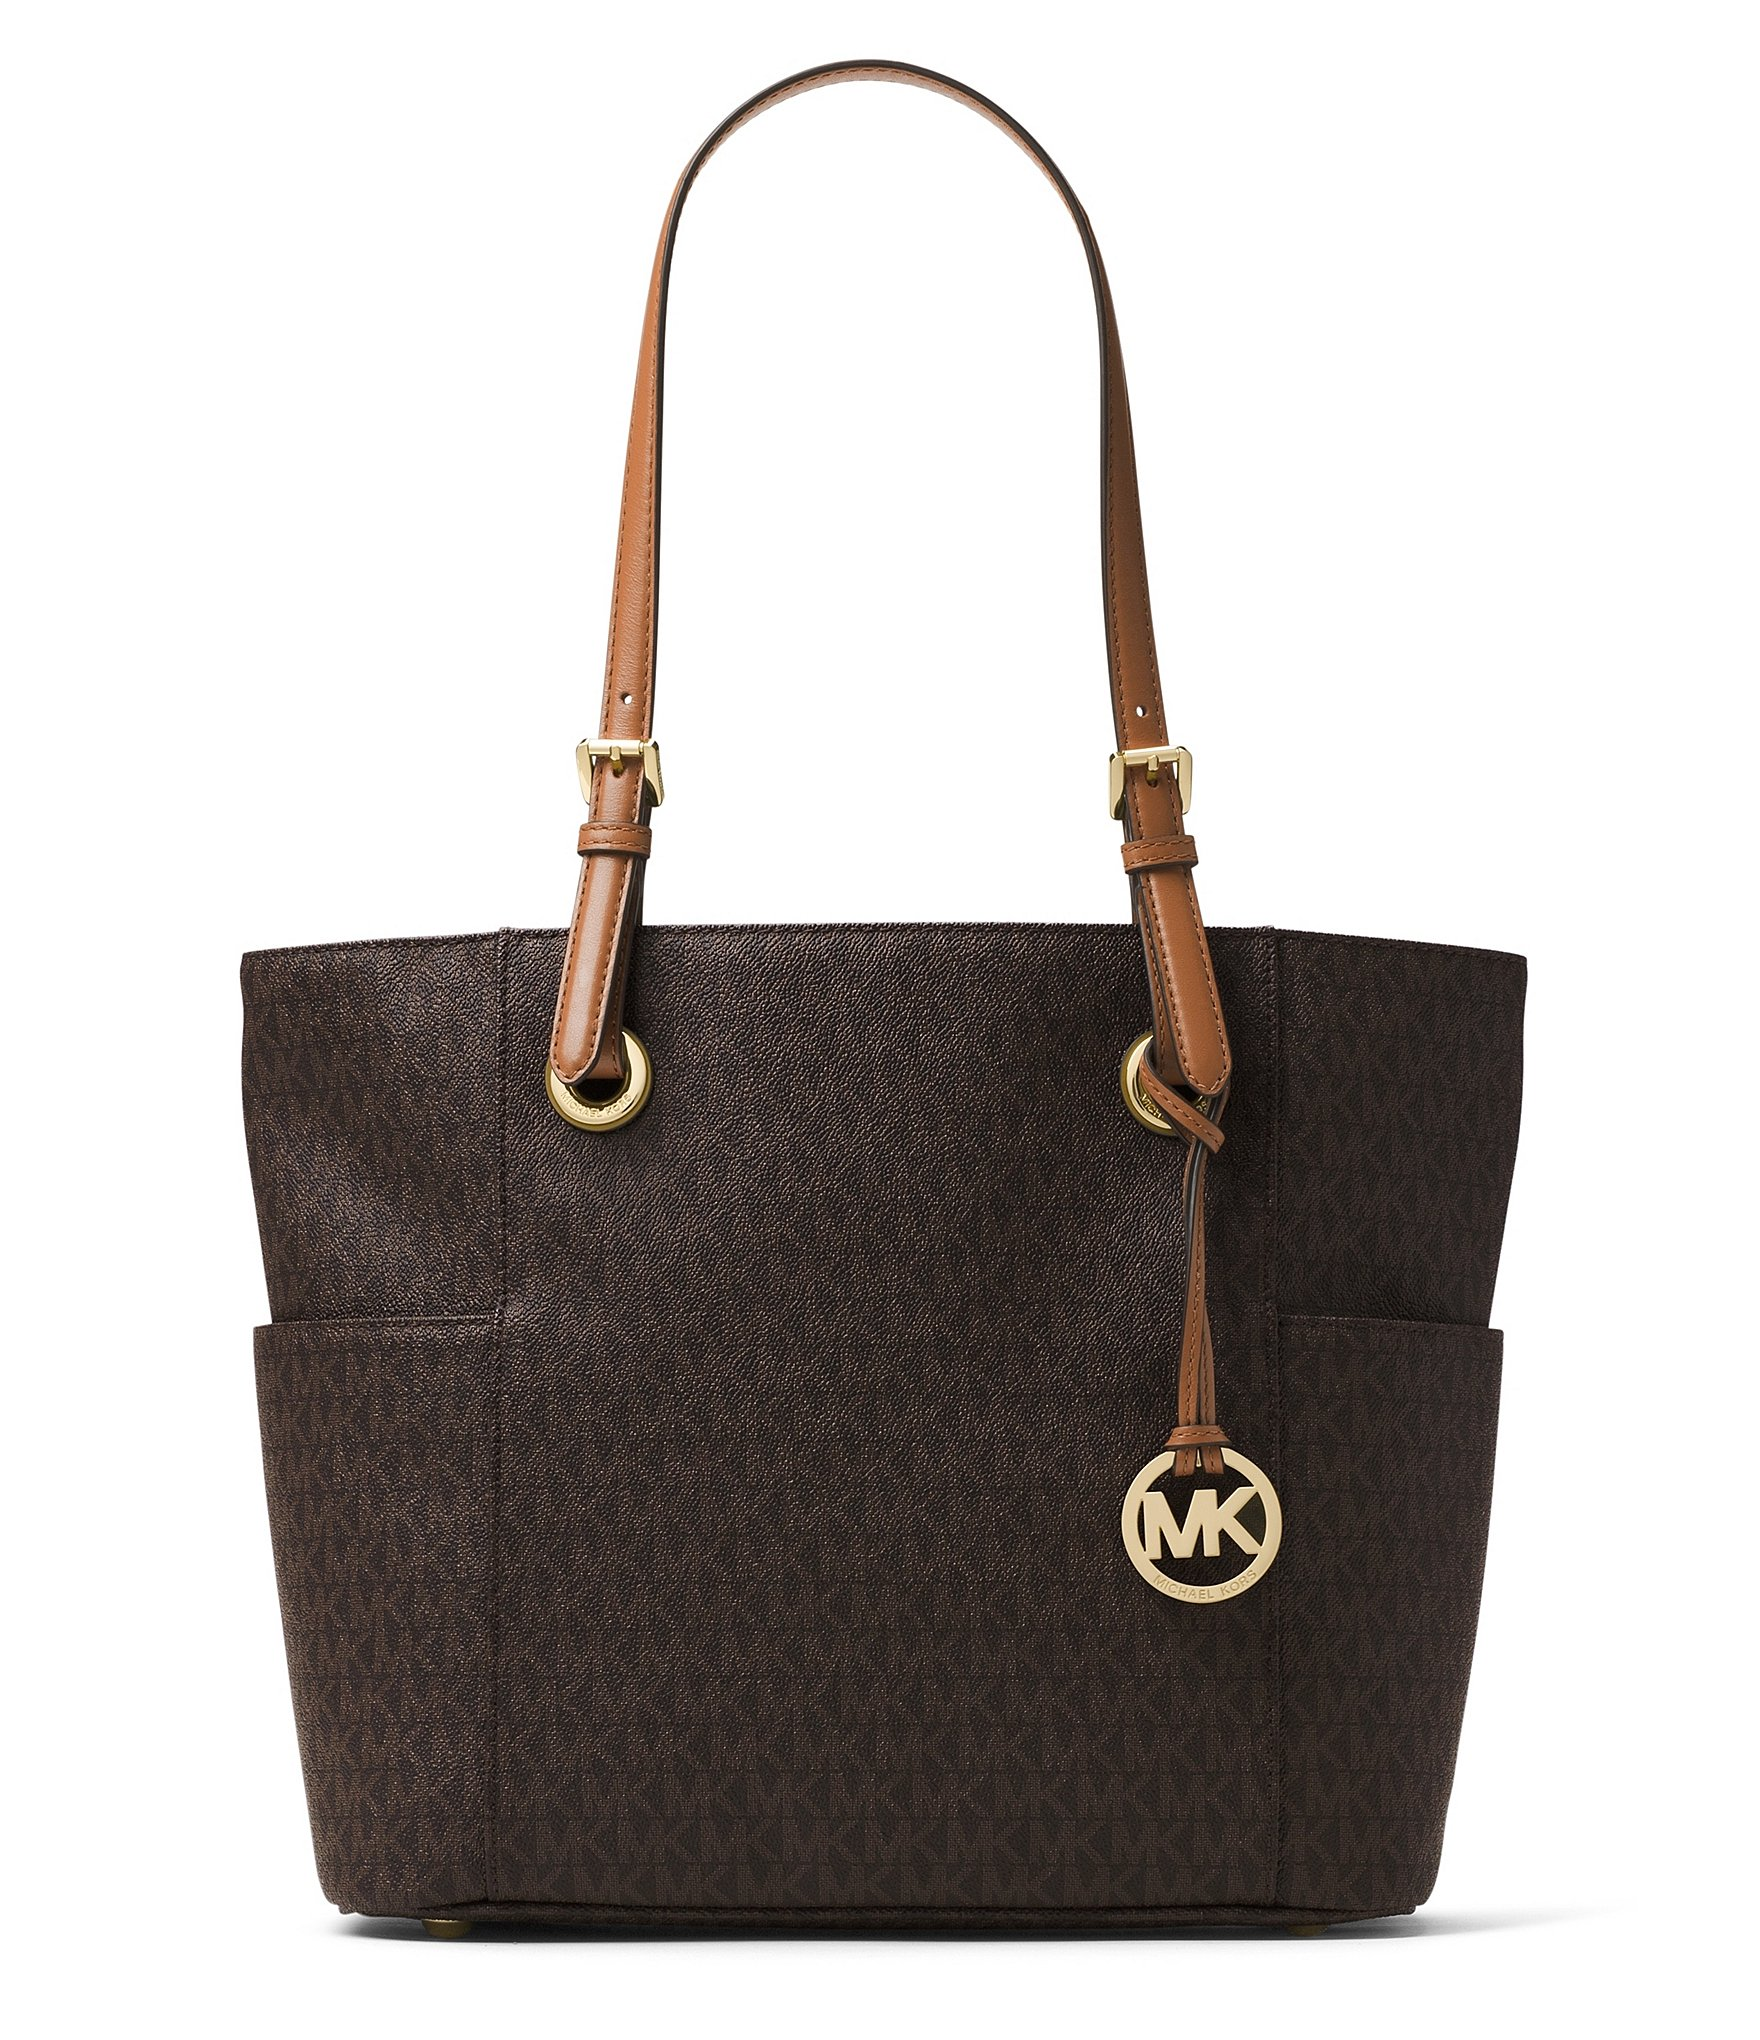 *Buy an eligible Jet Set Travel Large Drawstring Tote with an eligible Jet Set Travel Large Multifunction Phone Case for the bundled pre-tax cost of $ at any U.S. Michael Kors Outlet Store, between November 28, and December 7, , while supplies last. Not valid in Michael Kors Collection or Lifestyle Stores, or online.